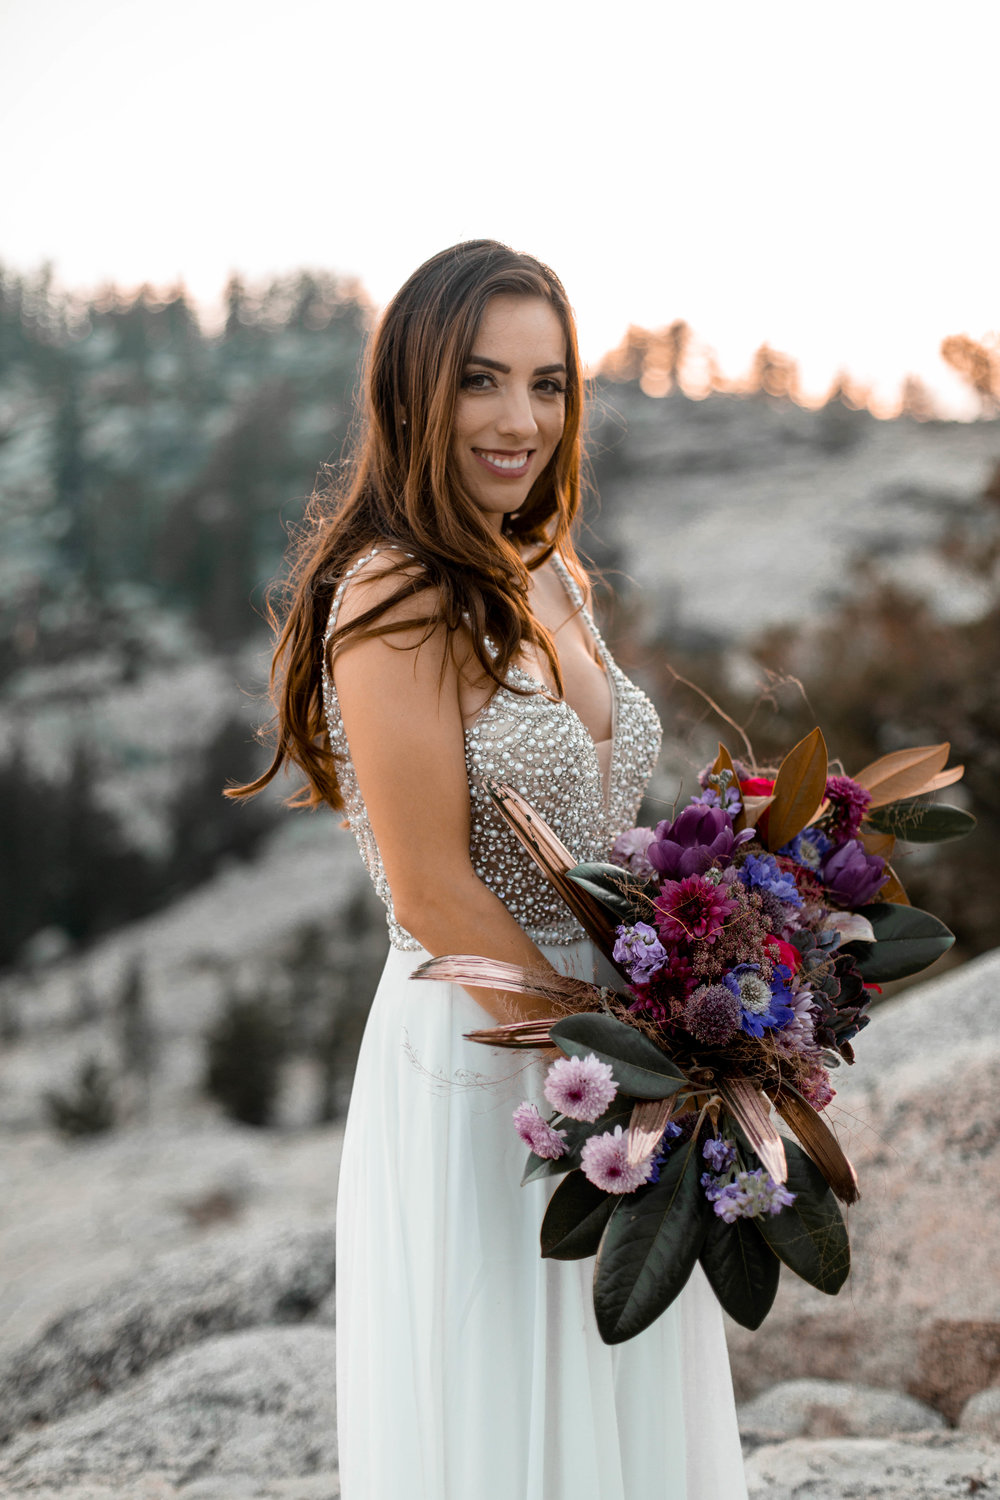 nicole-daacke-photography-yosemite-national-park-wedding-sunset-elopement-olmstead-point-yosemite-adventure-wedding-photographer-adventurous-elopement-destination-wedding-national-park-wedding-photography-1336.jpg